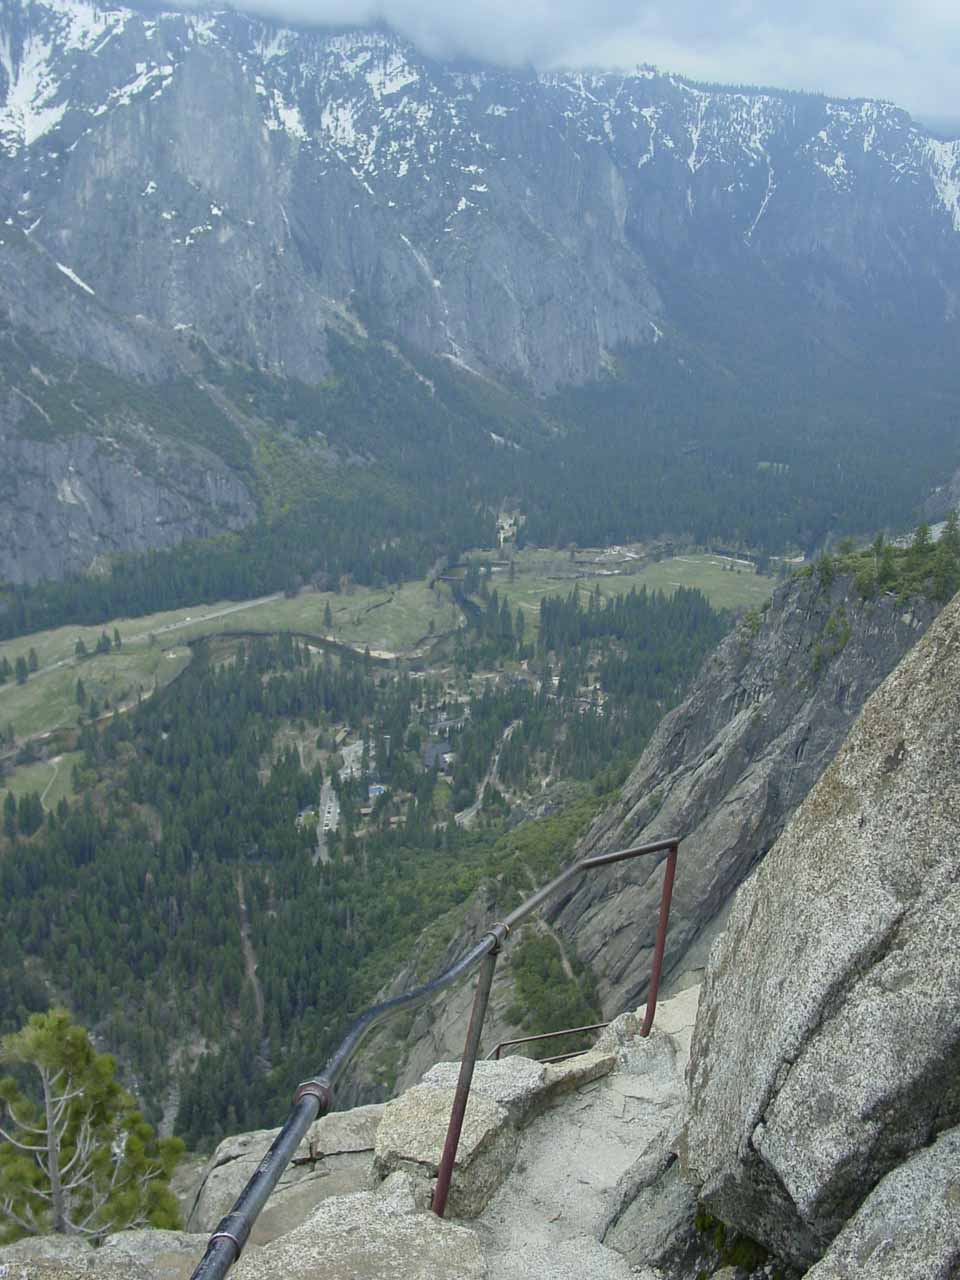 Some cliff exposure near the top of Yosemite Falls